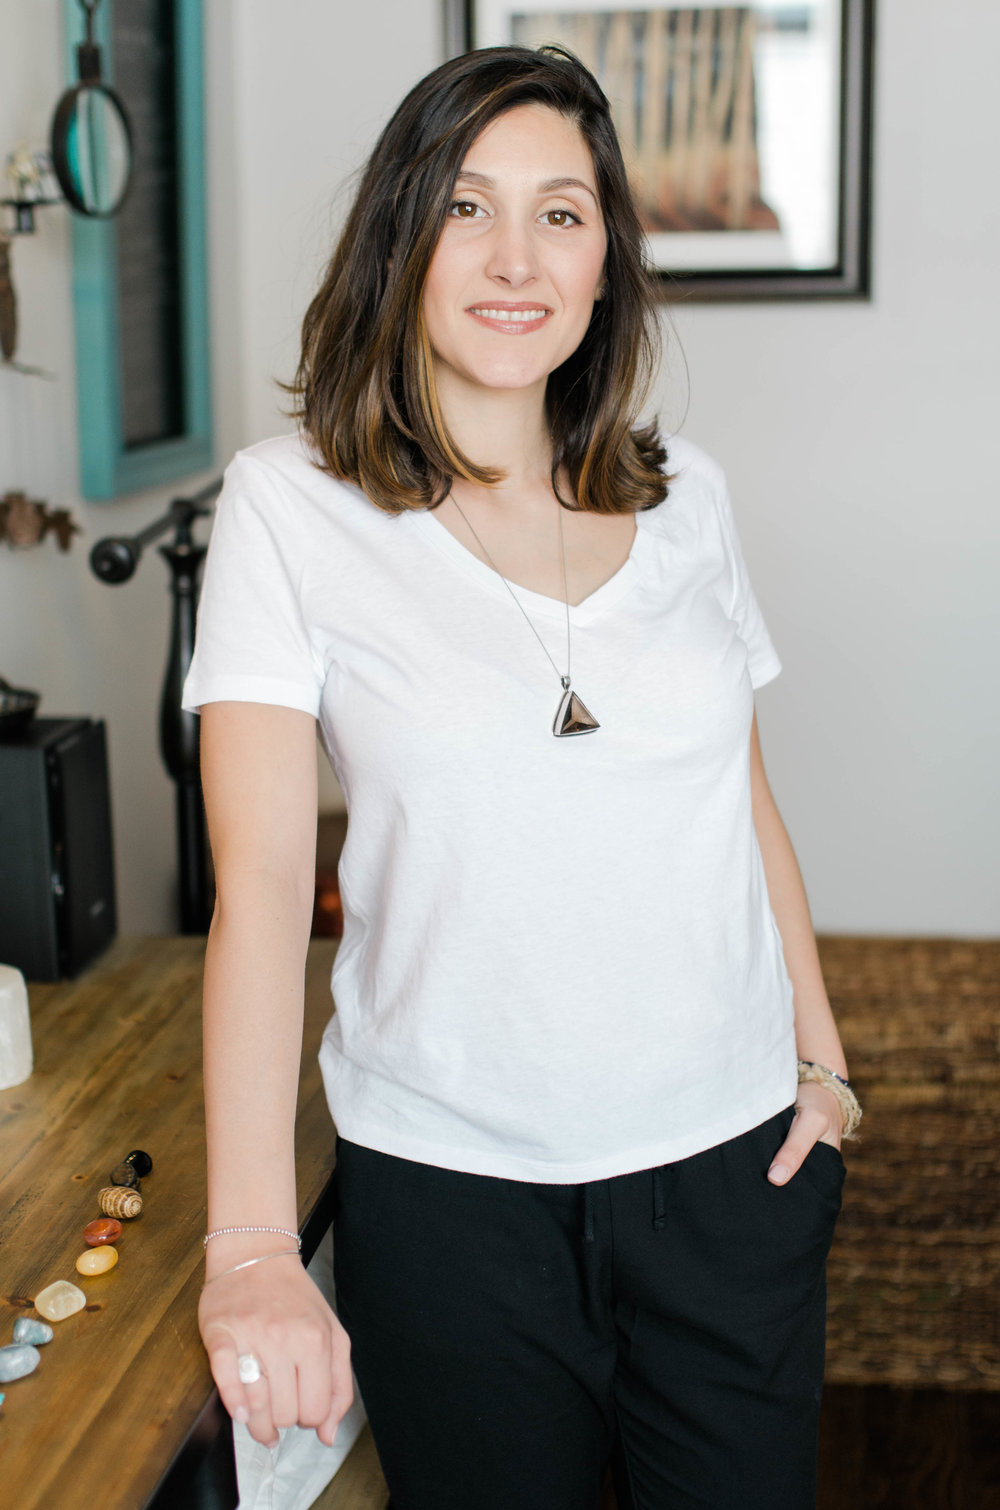 Kiriaki (Kiki) Pertesis, Owner, Esthetician, Massage Therapist